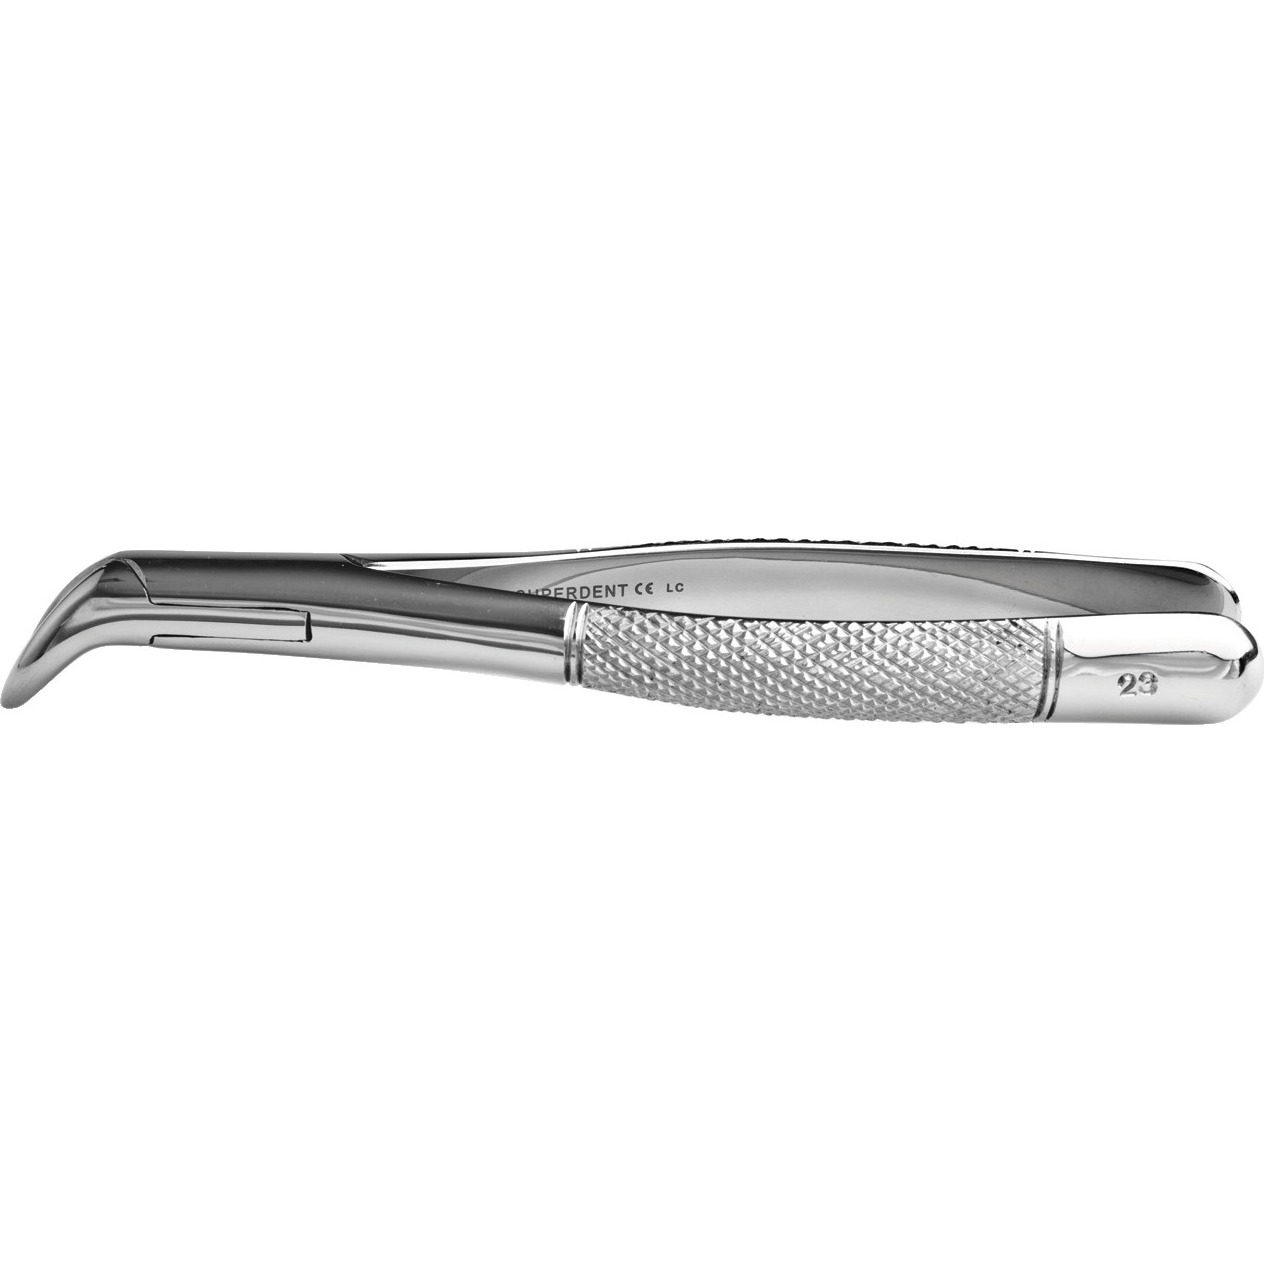 9552322 Stainless Steel Extraction Forceps #23, Cow Horn Beak, Straight Handle